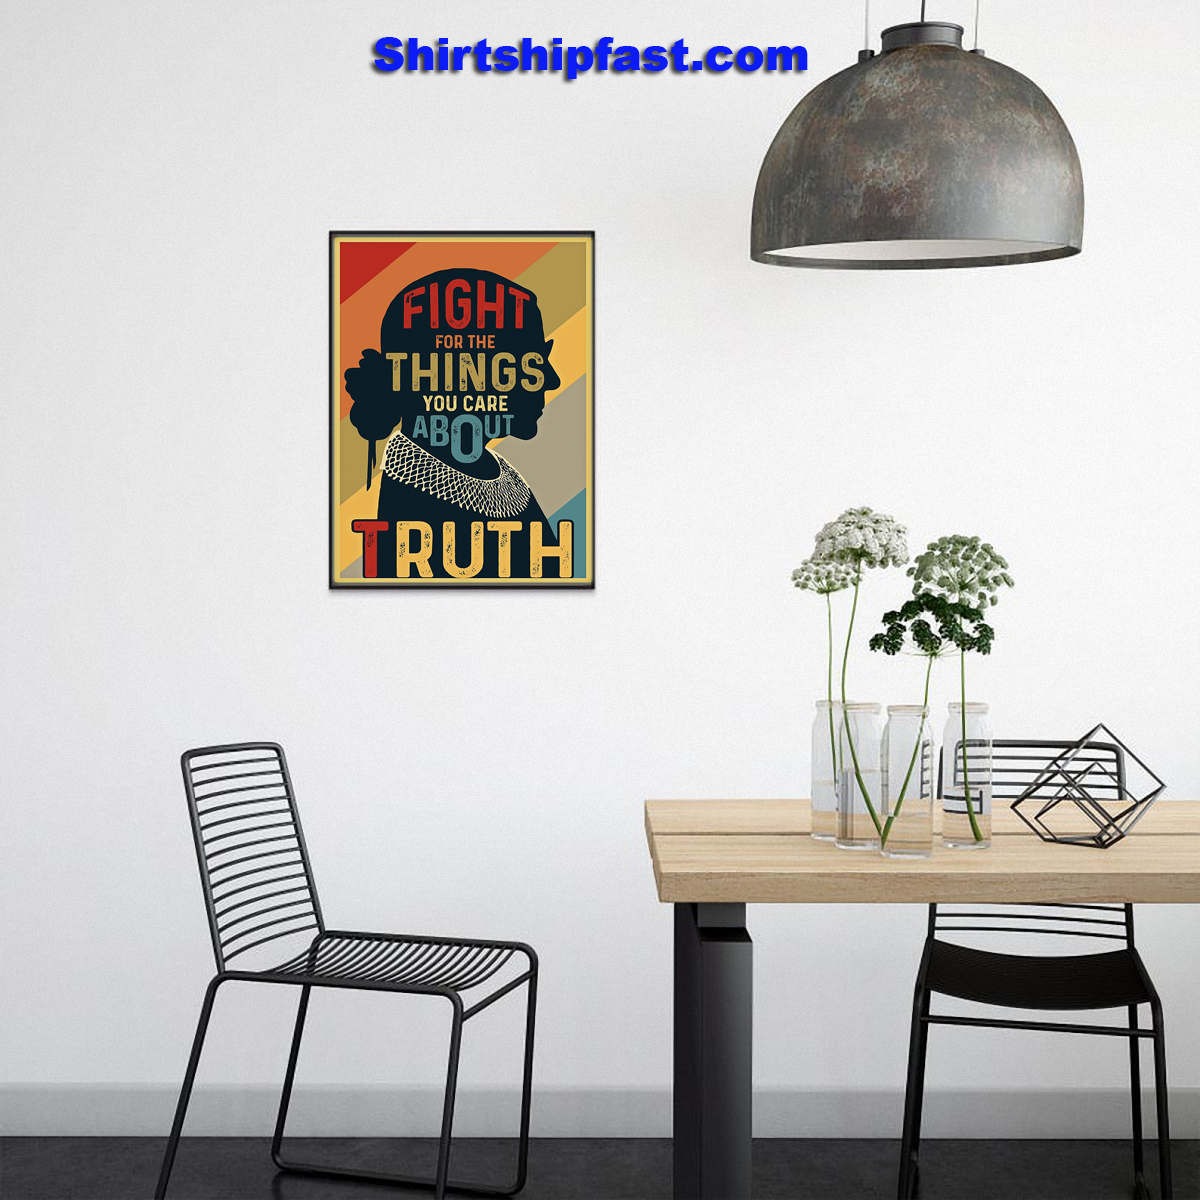 RBG fight for the things you care about truth poster - Picture 3